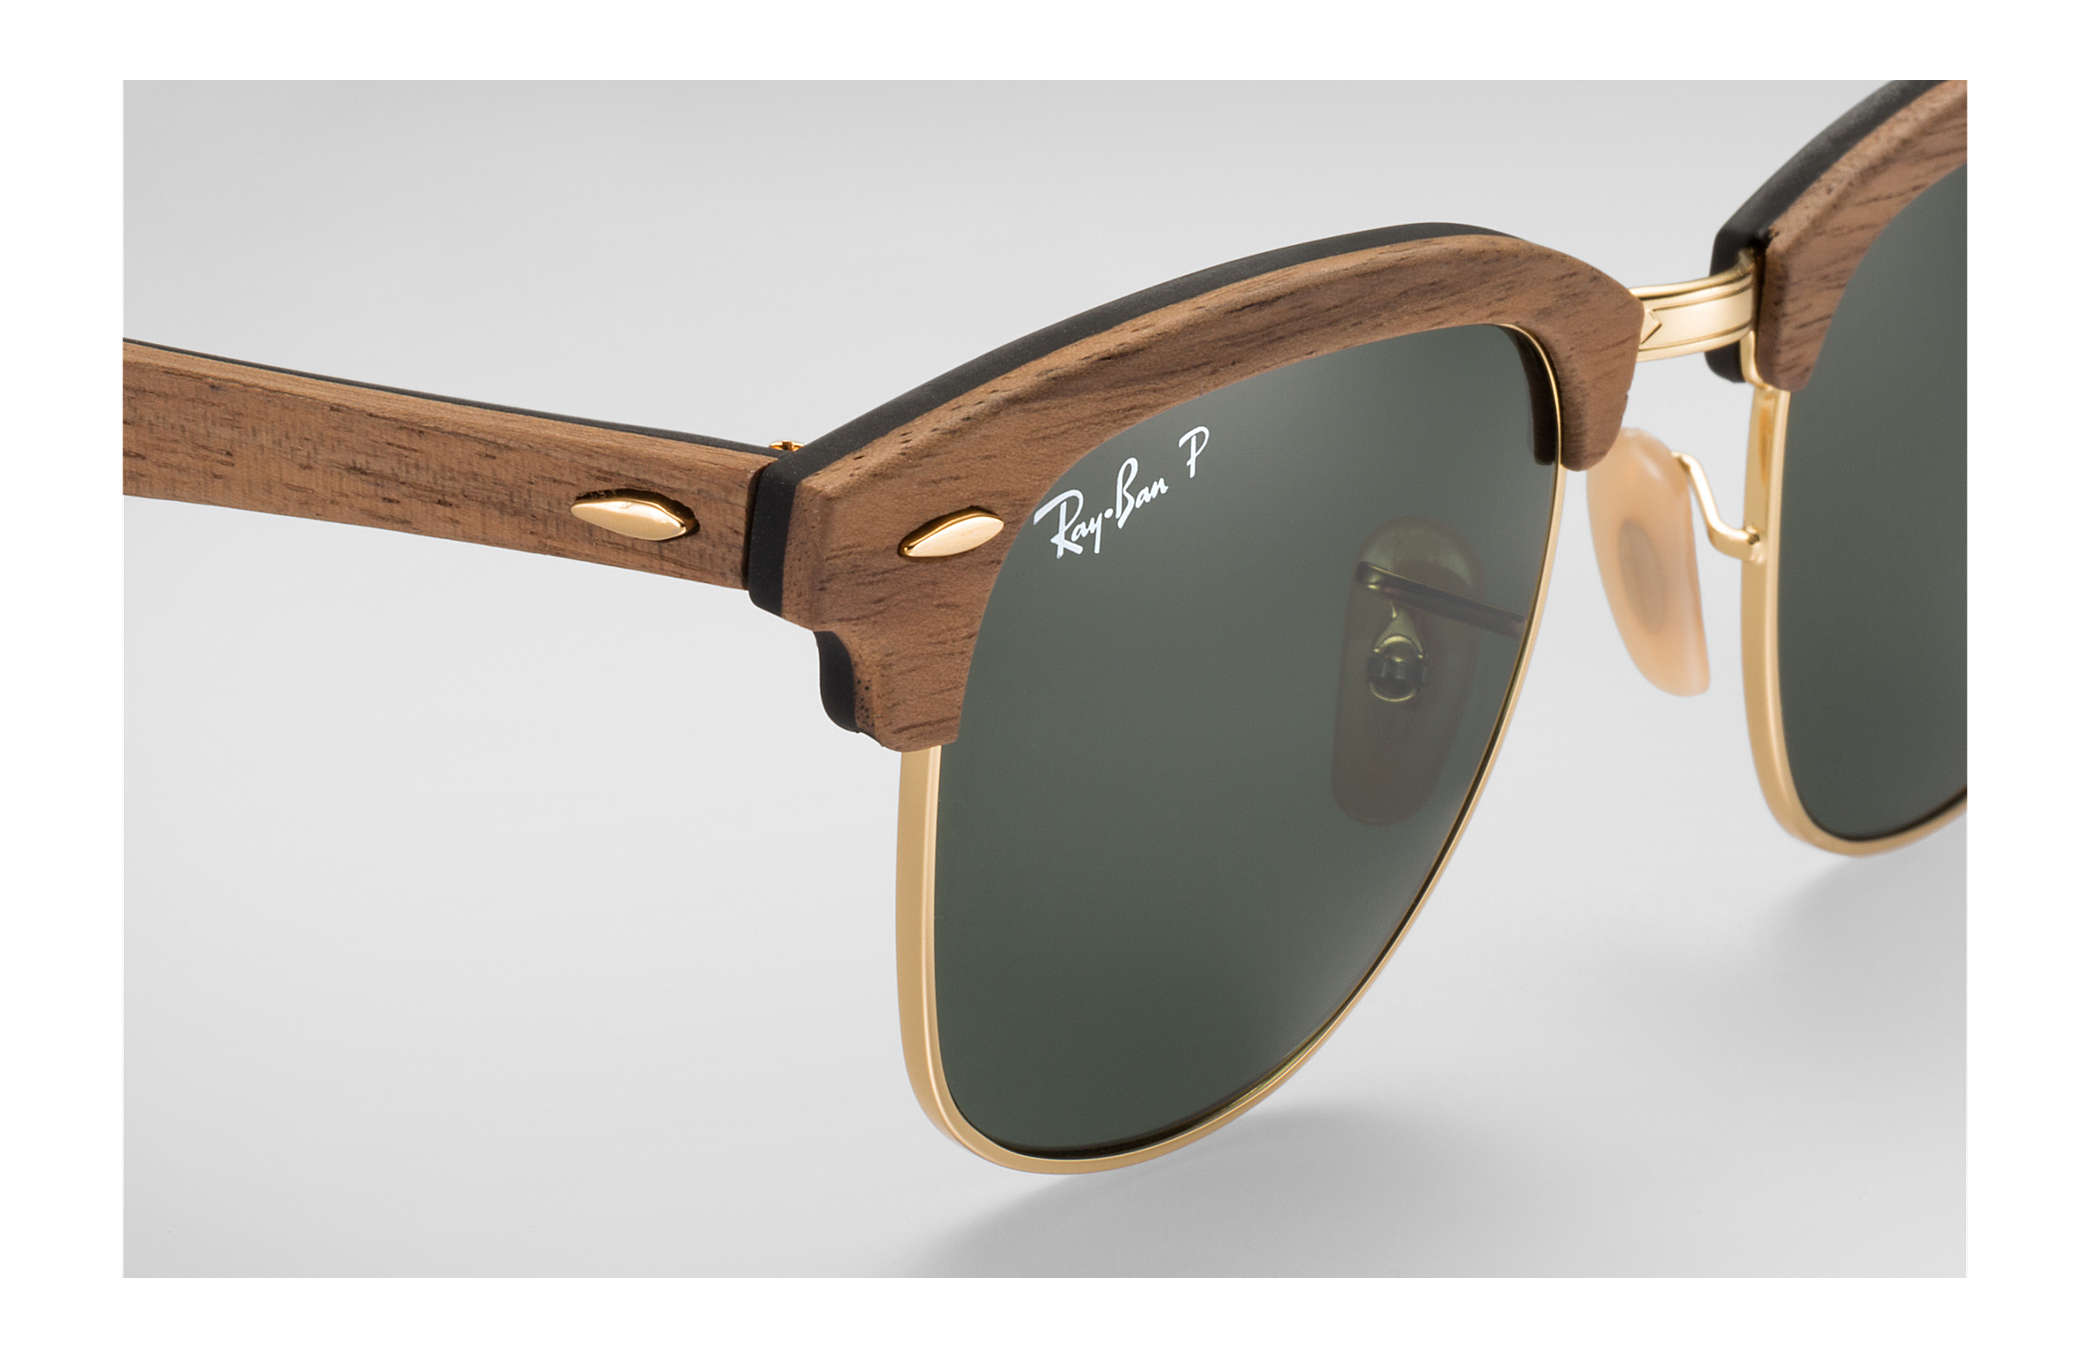 4182b531f8 Ray-Ban Clubmaster Wood RB3016M Brown - Wood - Green Polarized ...